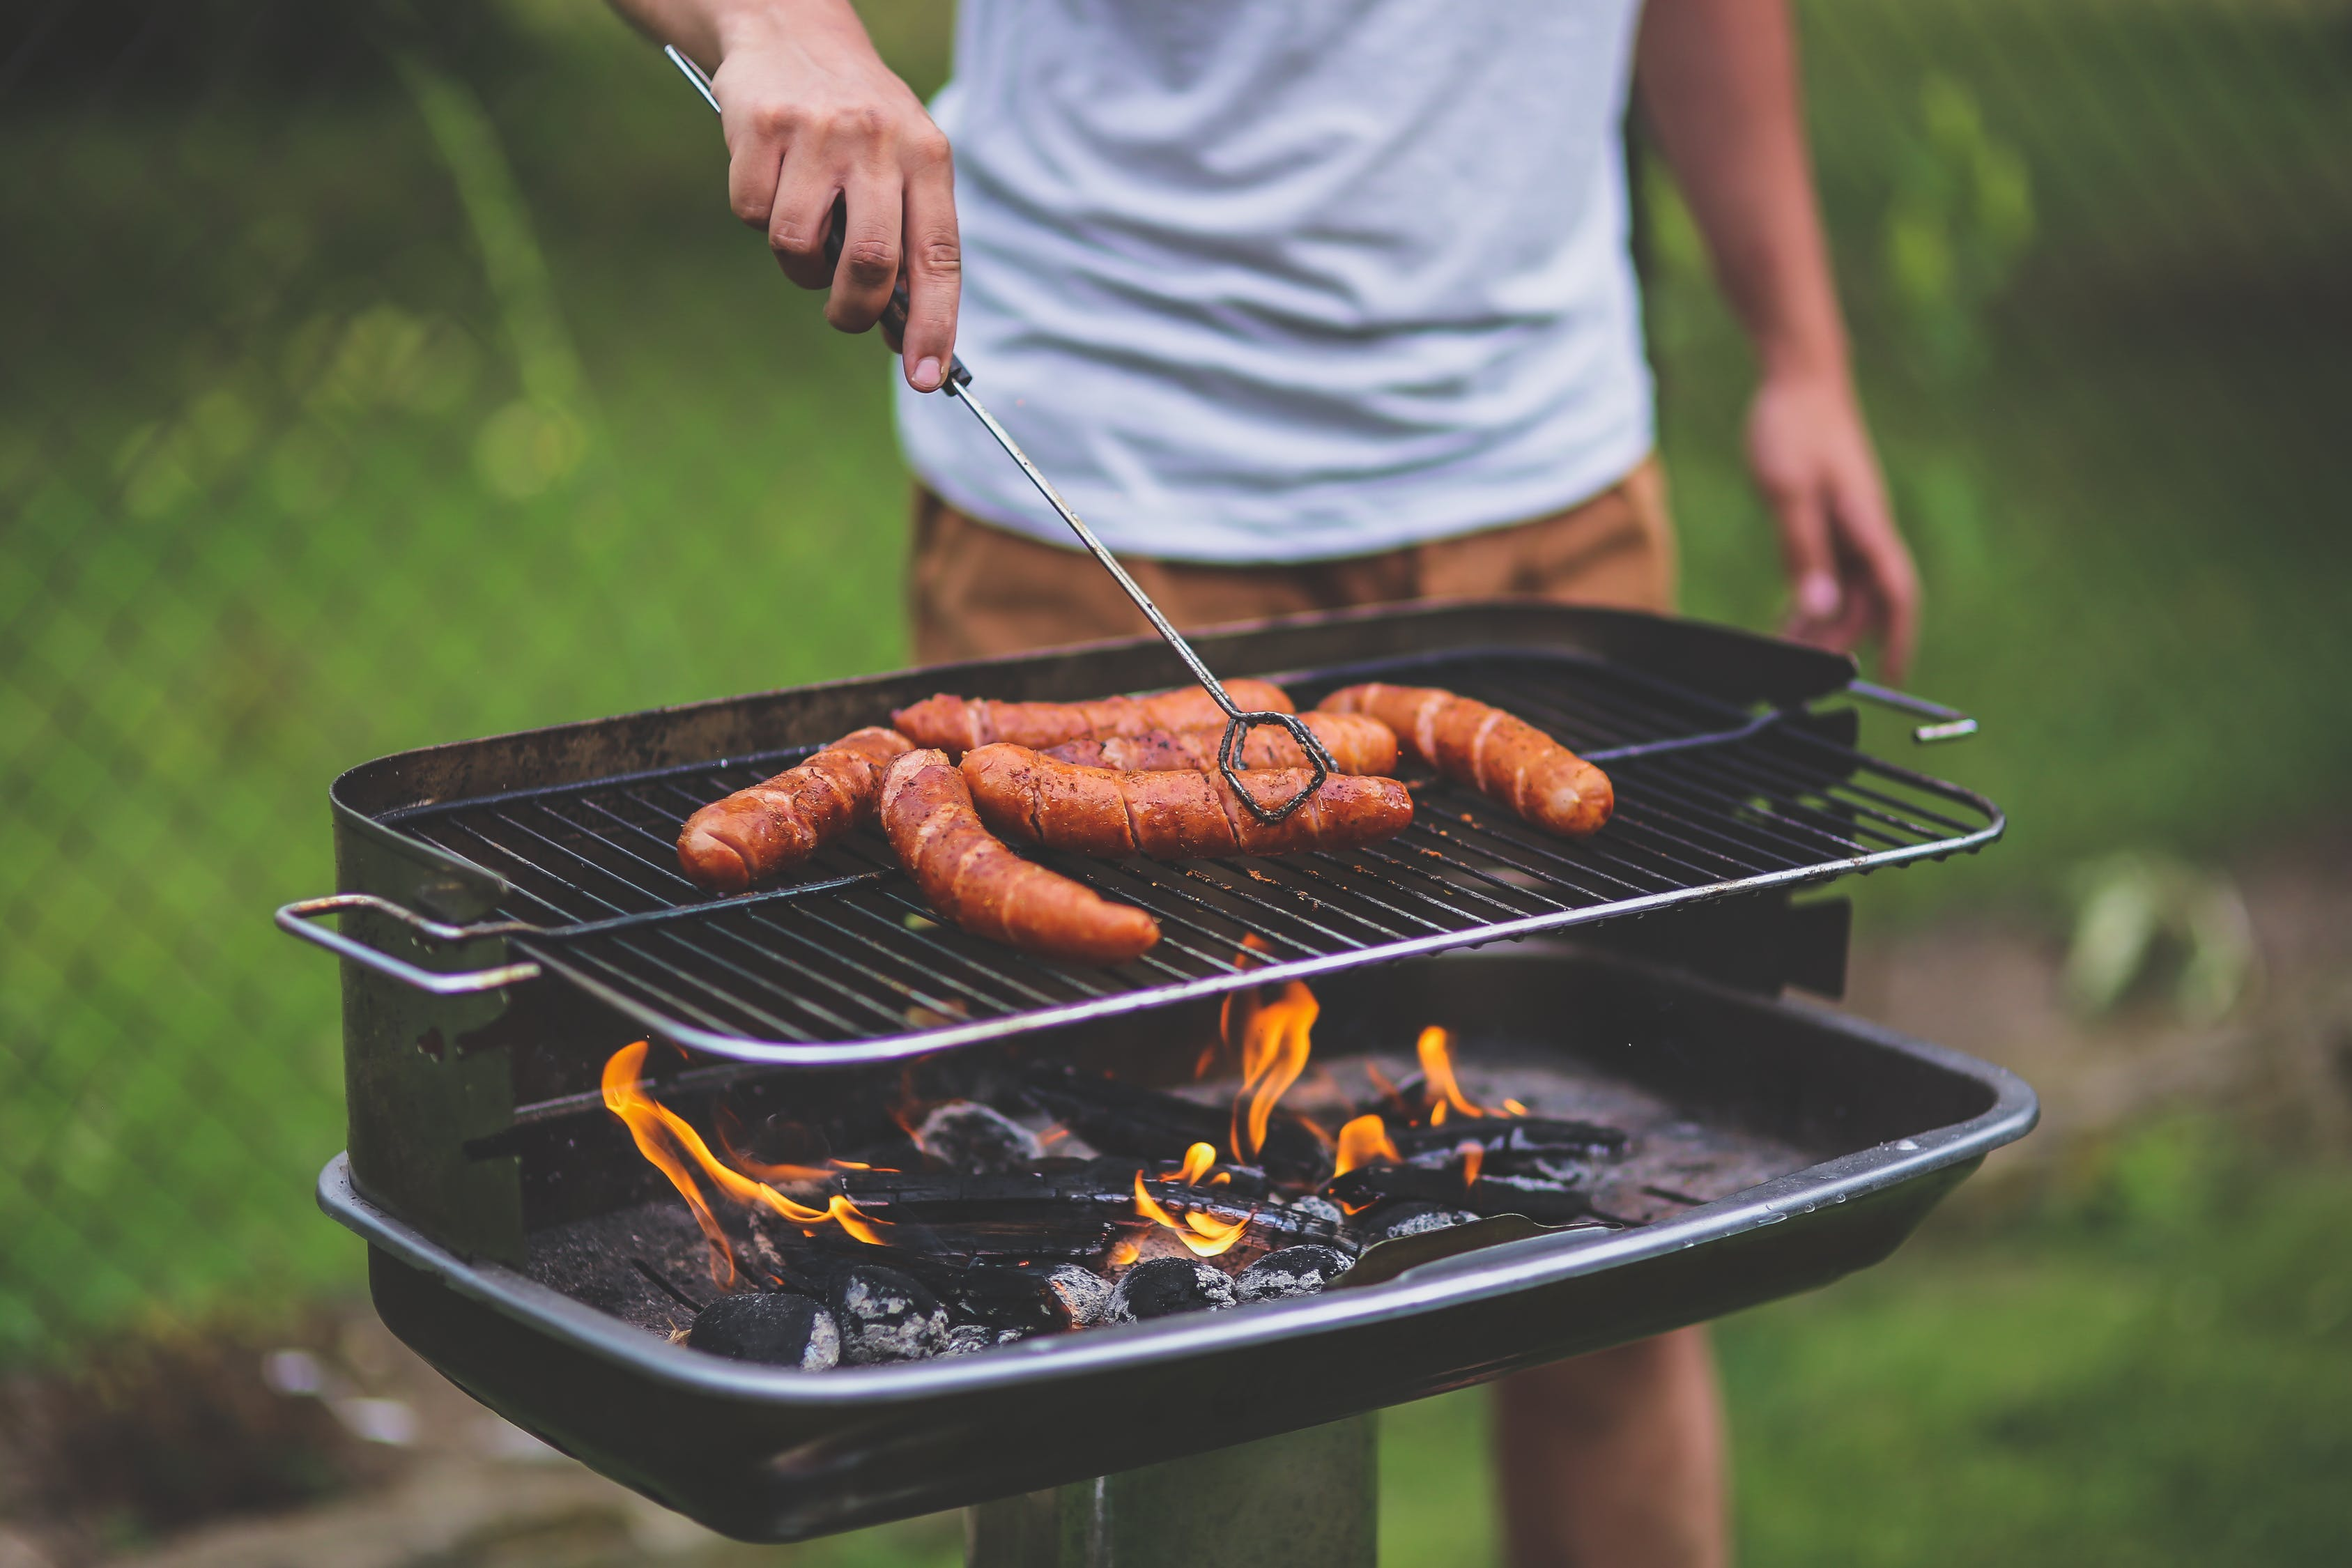 A man grilling hot dogs.